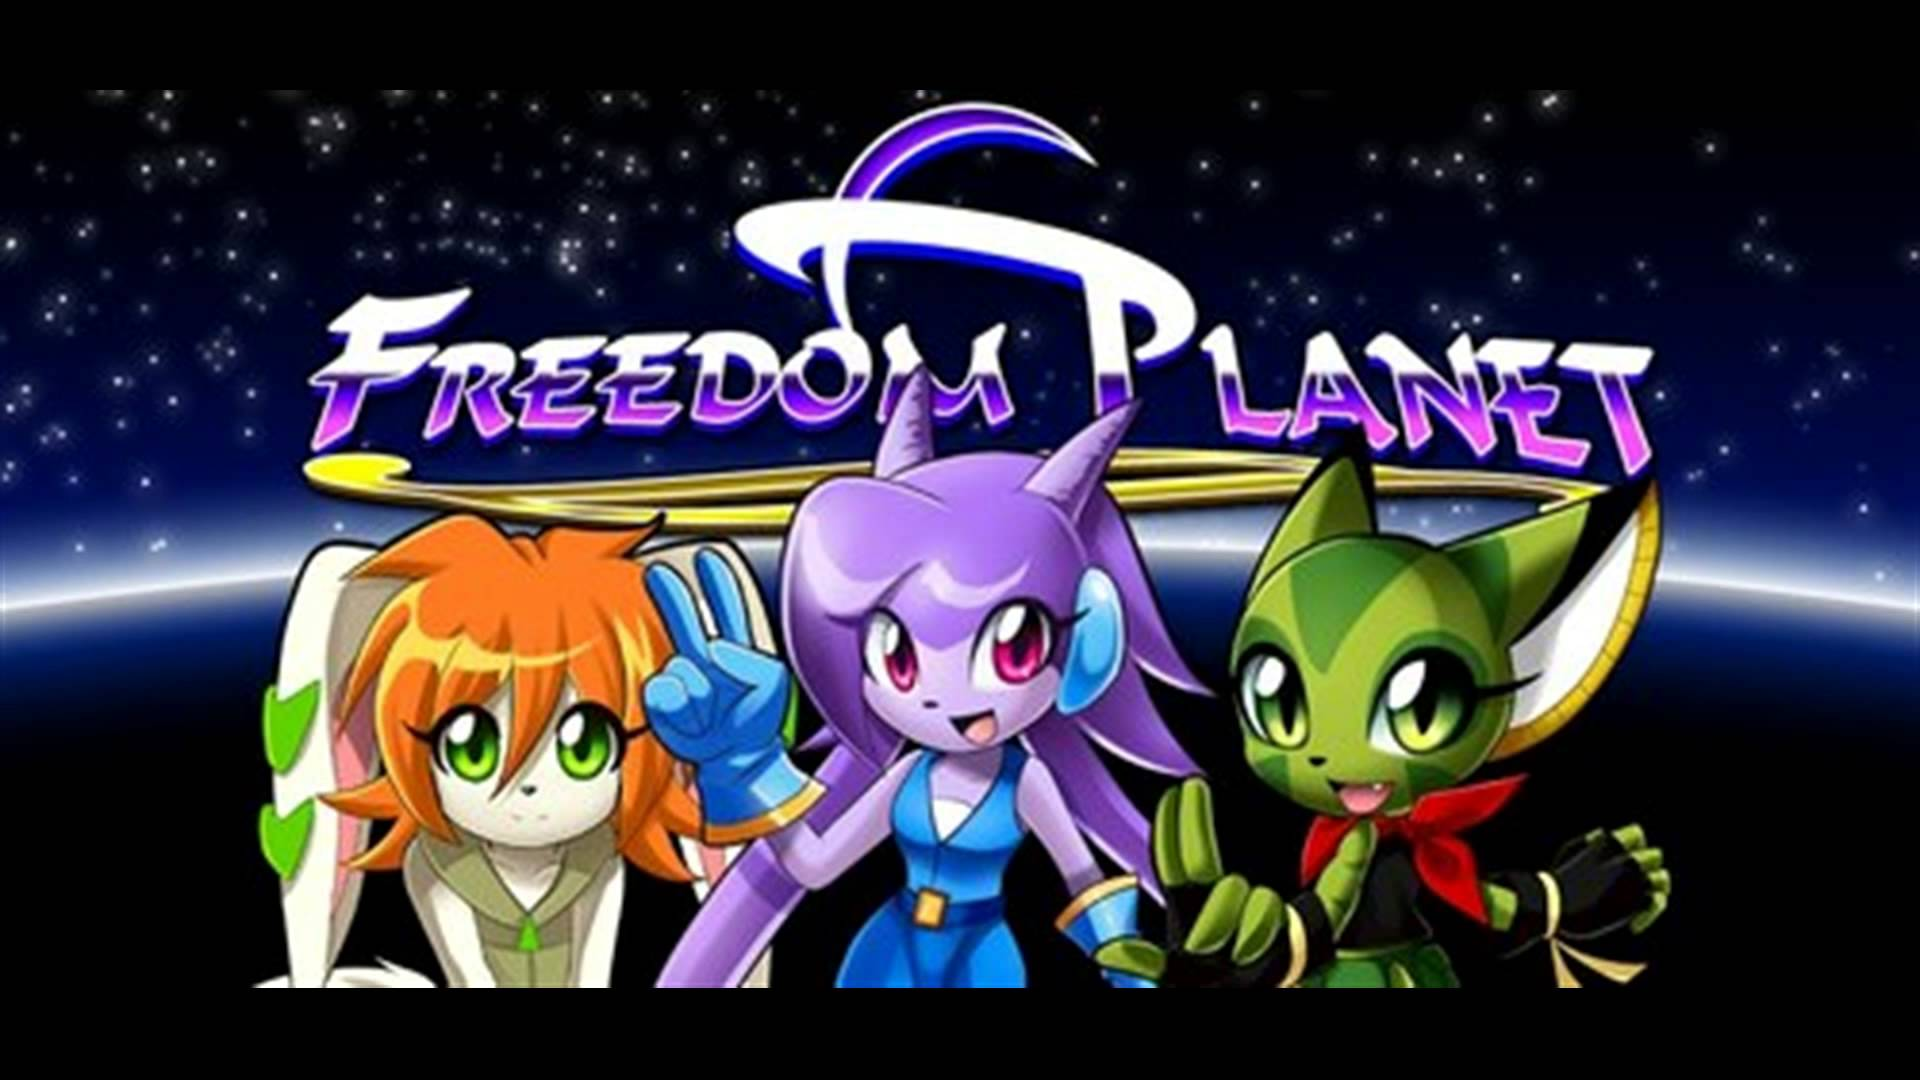 Freedom Planet Images Wallpaper HD And Background Photos